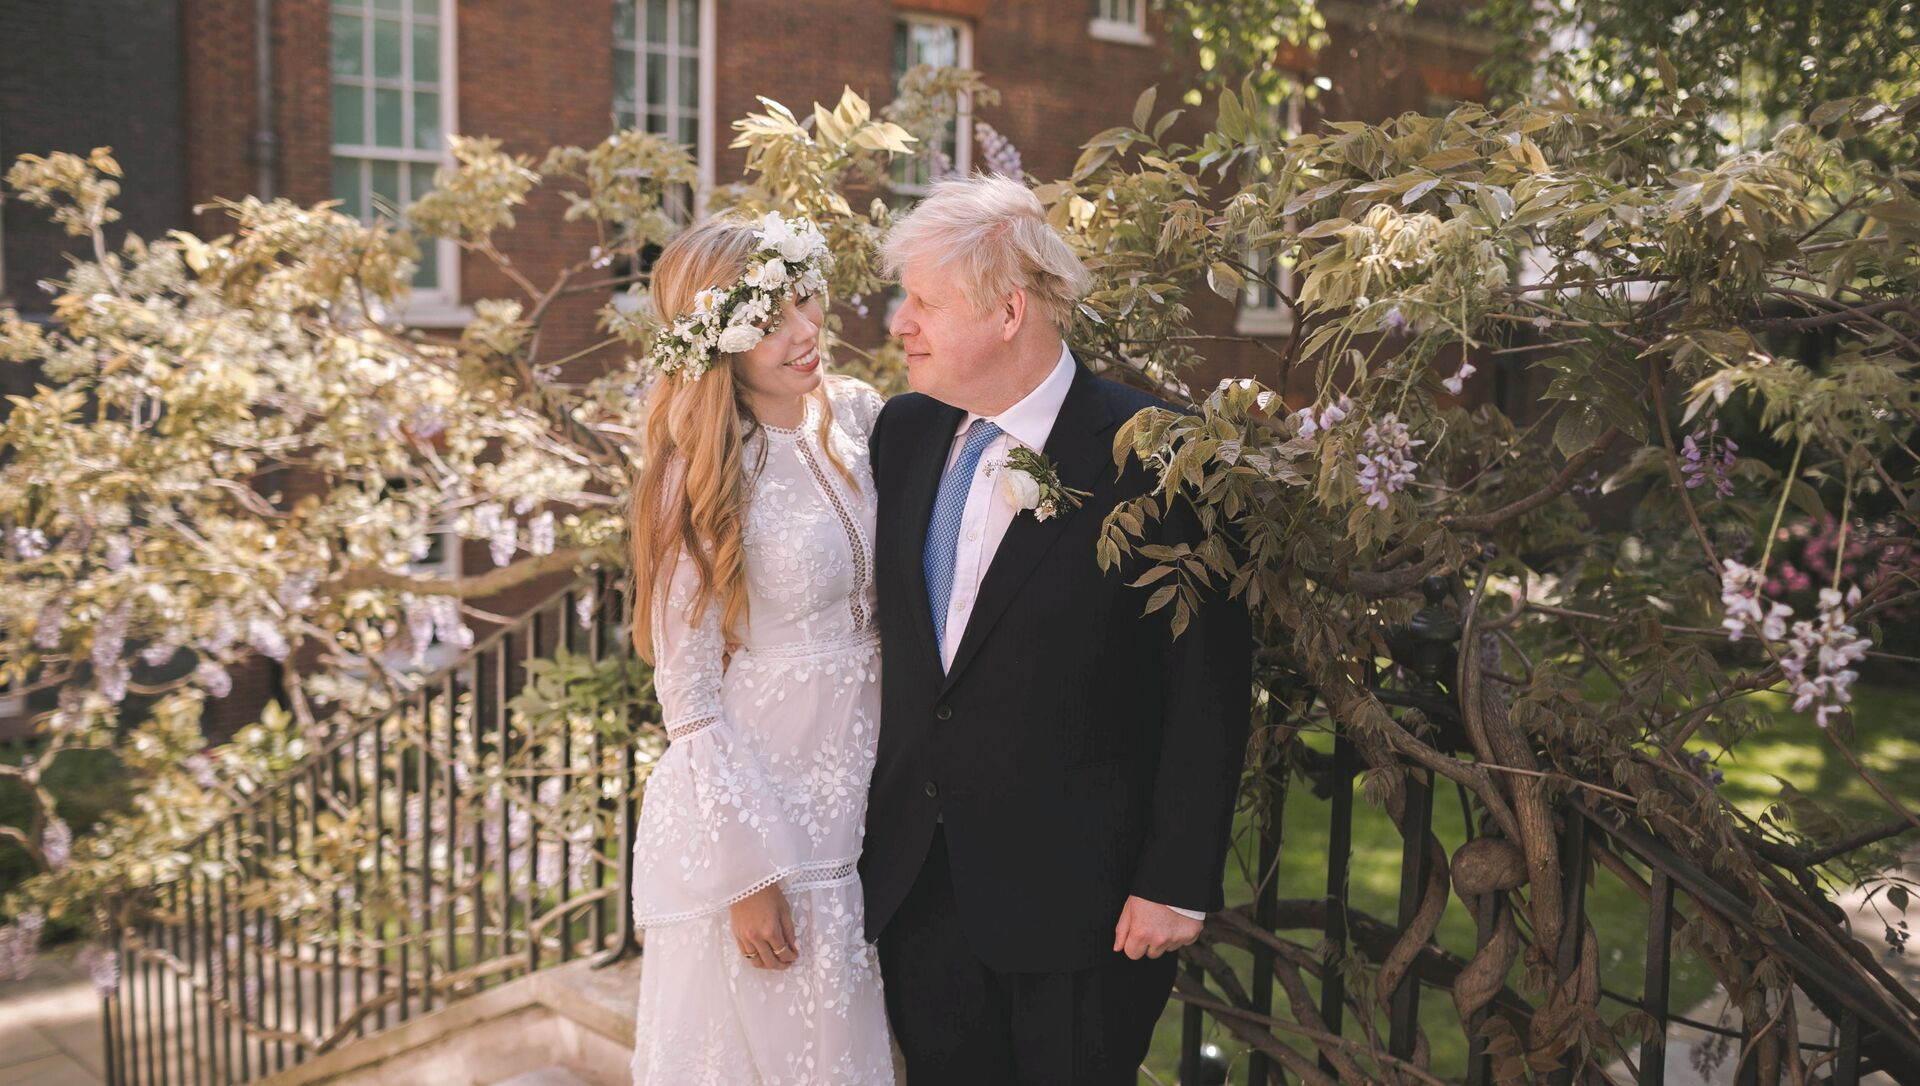 Boris and Carrie Johnson are seen in the garden of 10 Downing Street, after their wedding, in London, Britain May 29, 2021. Picture taken May 29, 2021. Rebecca Fulton/Pool via REUTERS     TPX IMAGES OF THE DAY - Sputnik International, 1920, 15.08.2021